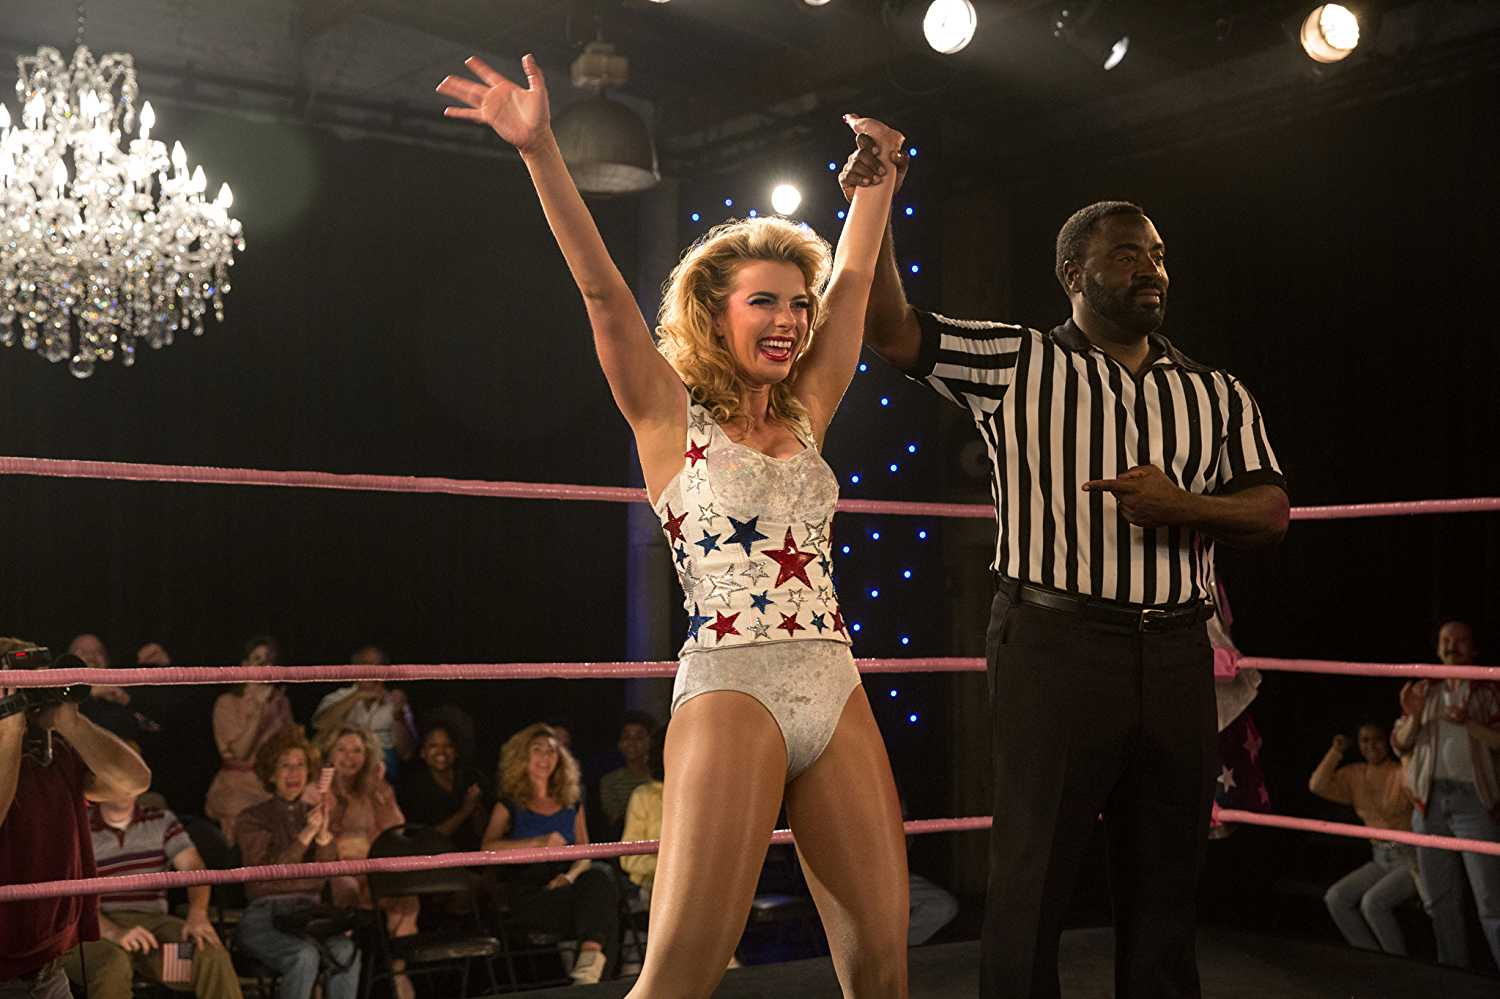 'GLOW' chronicled the fictionalized livesmid-1980s980s female wrestlers (Source: IMDb)